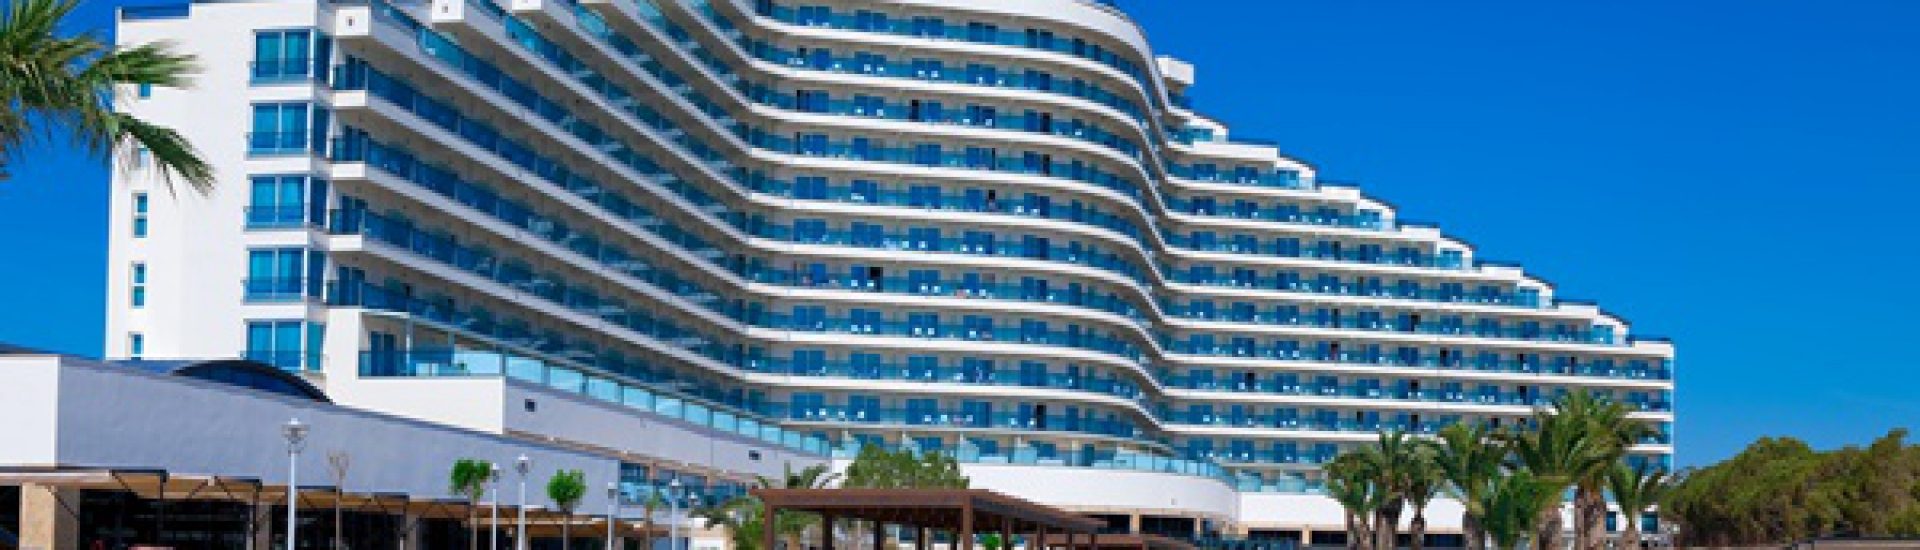 НГ 2020 в Дидим:ΗΟΤΕL VENOSA BEACH RESORT &SPA -5*